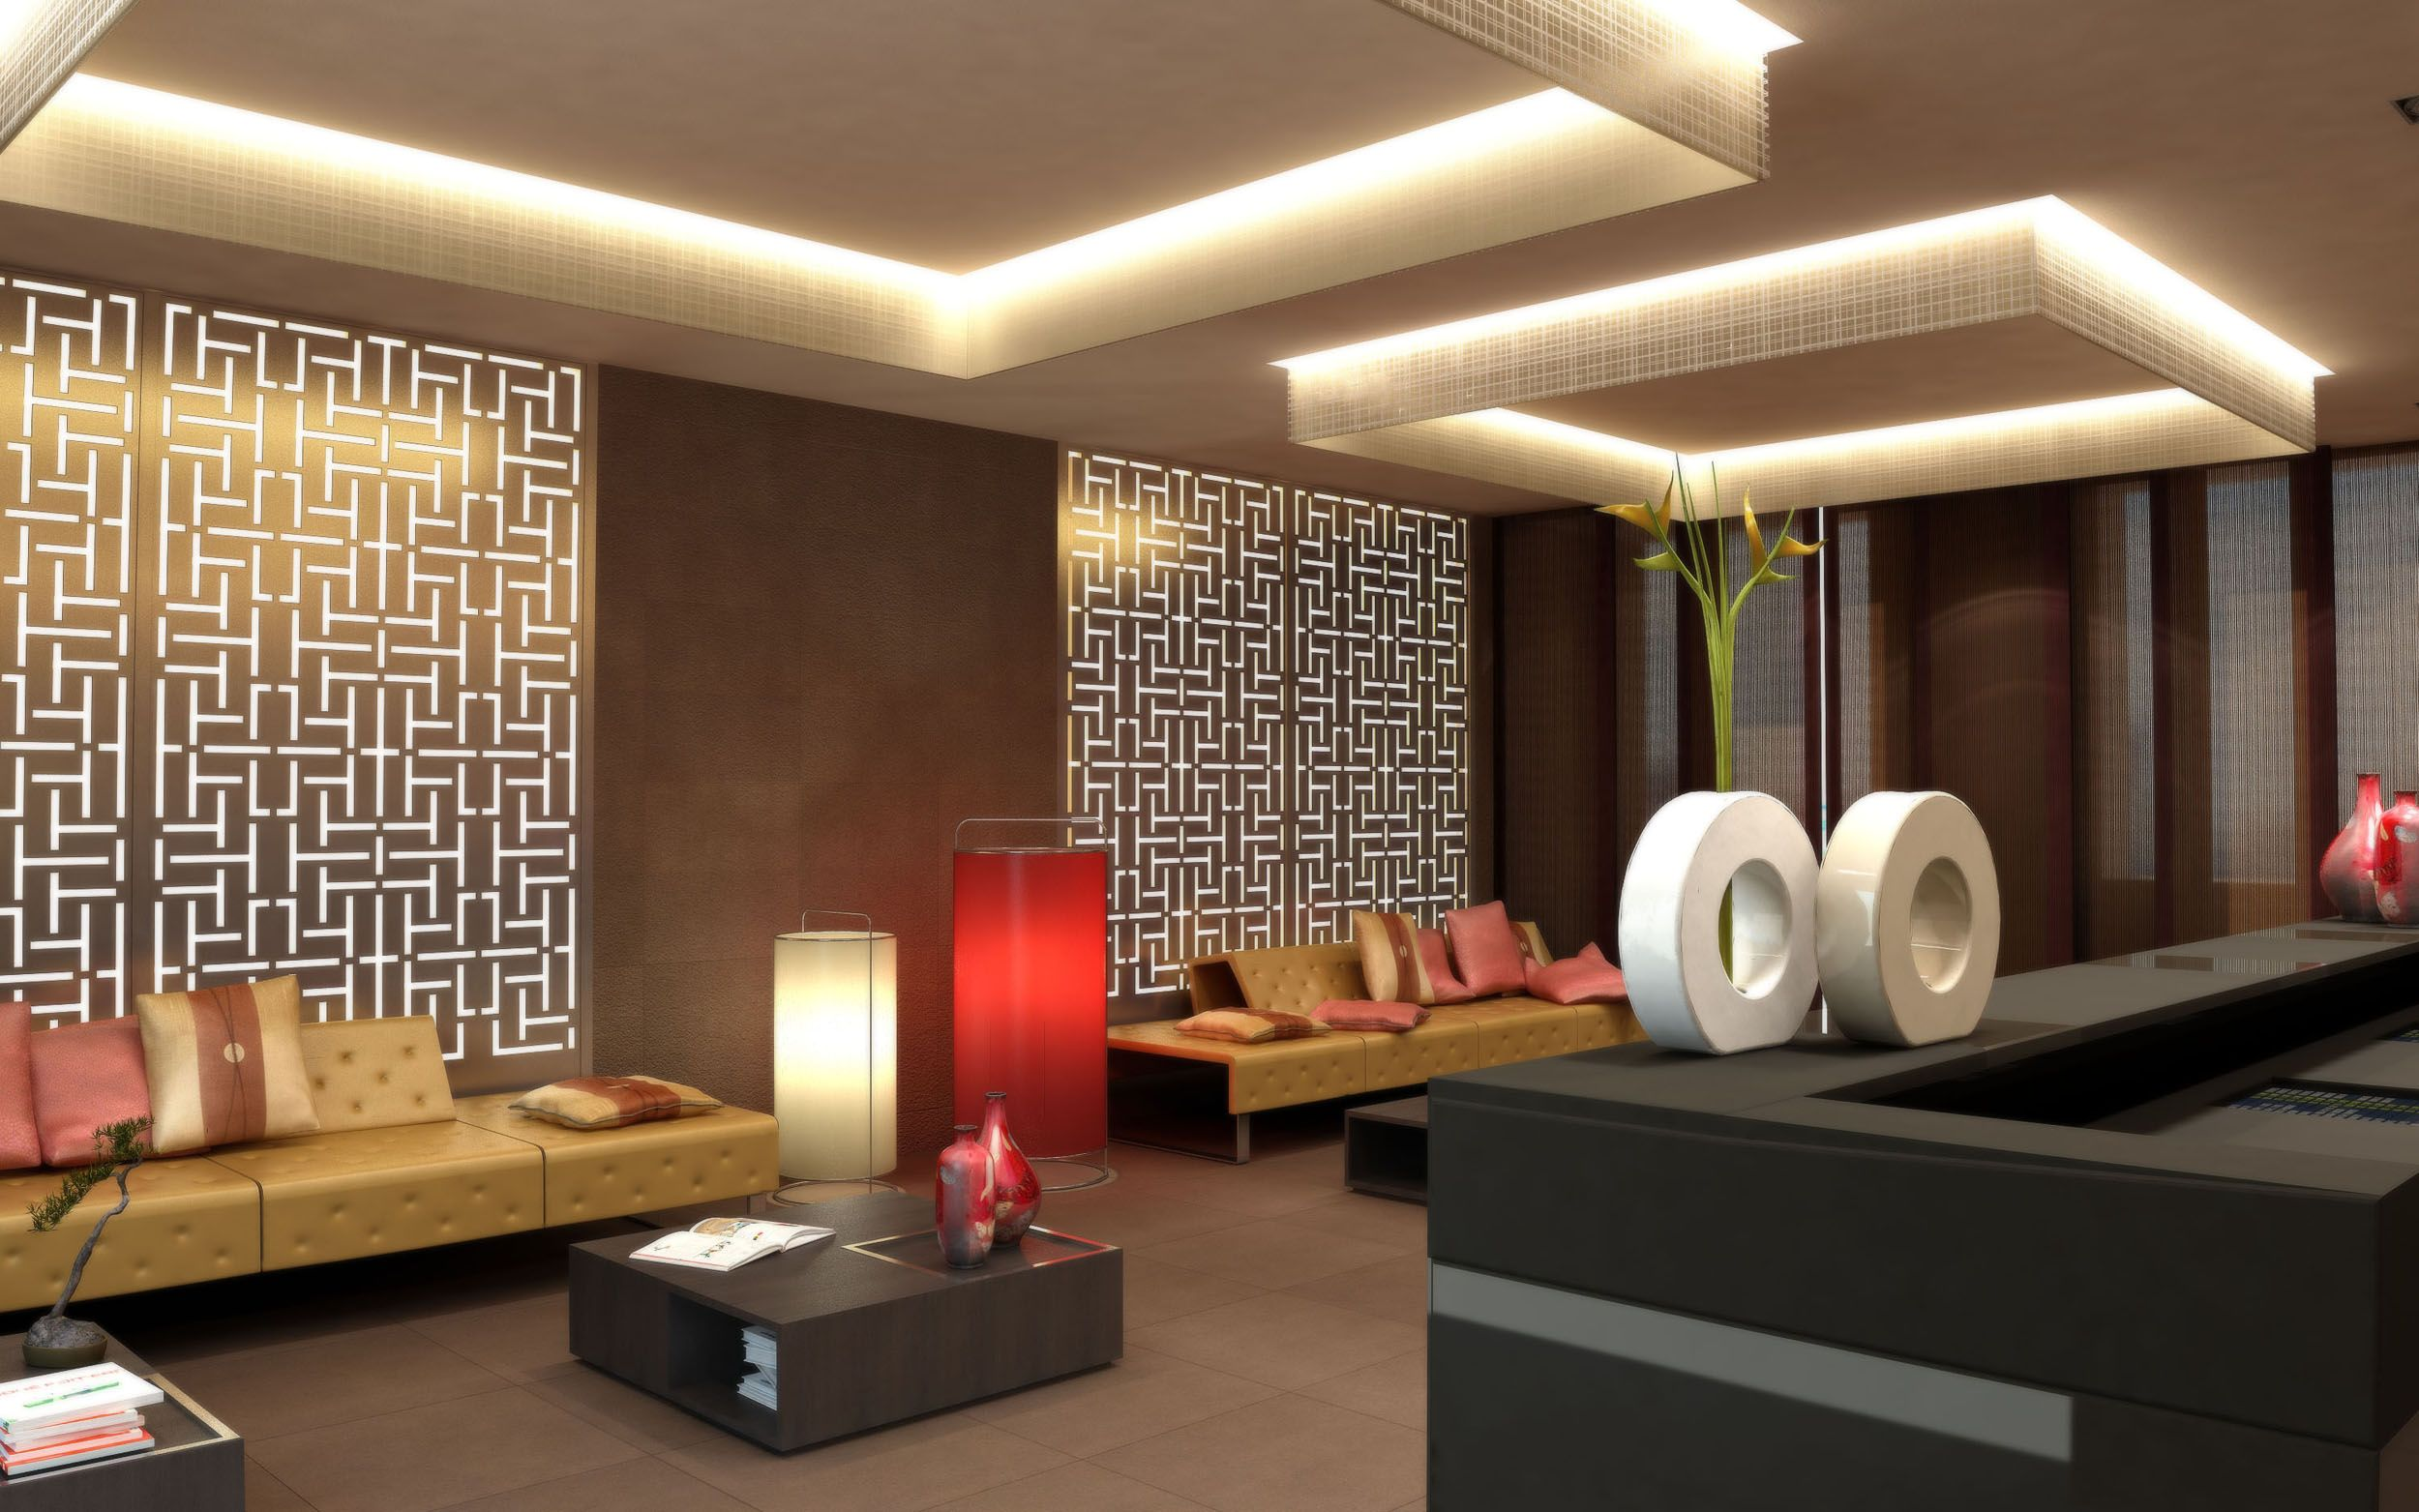 Chinese interior design images chinese interior design Home interior furniture